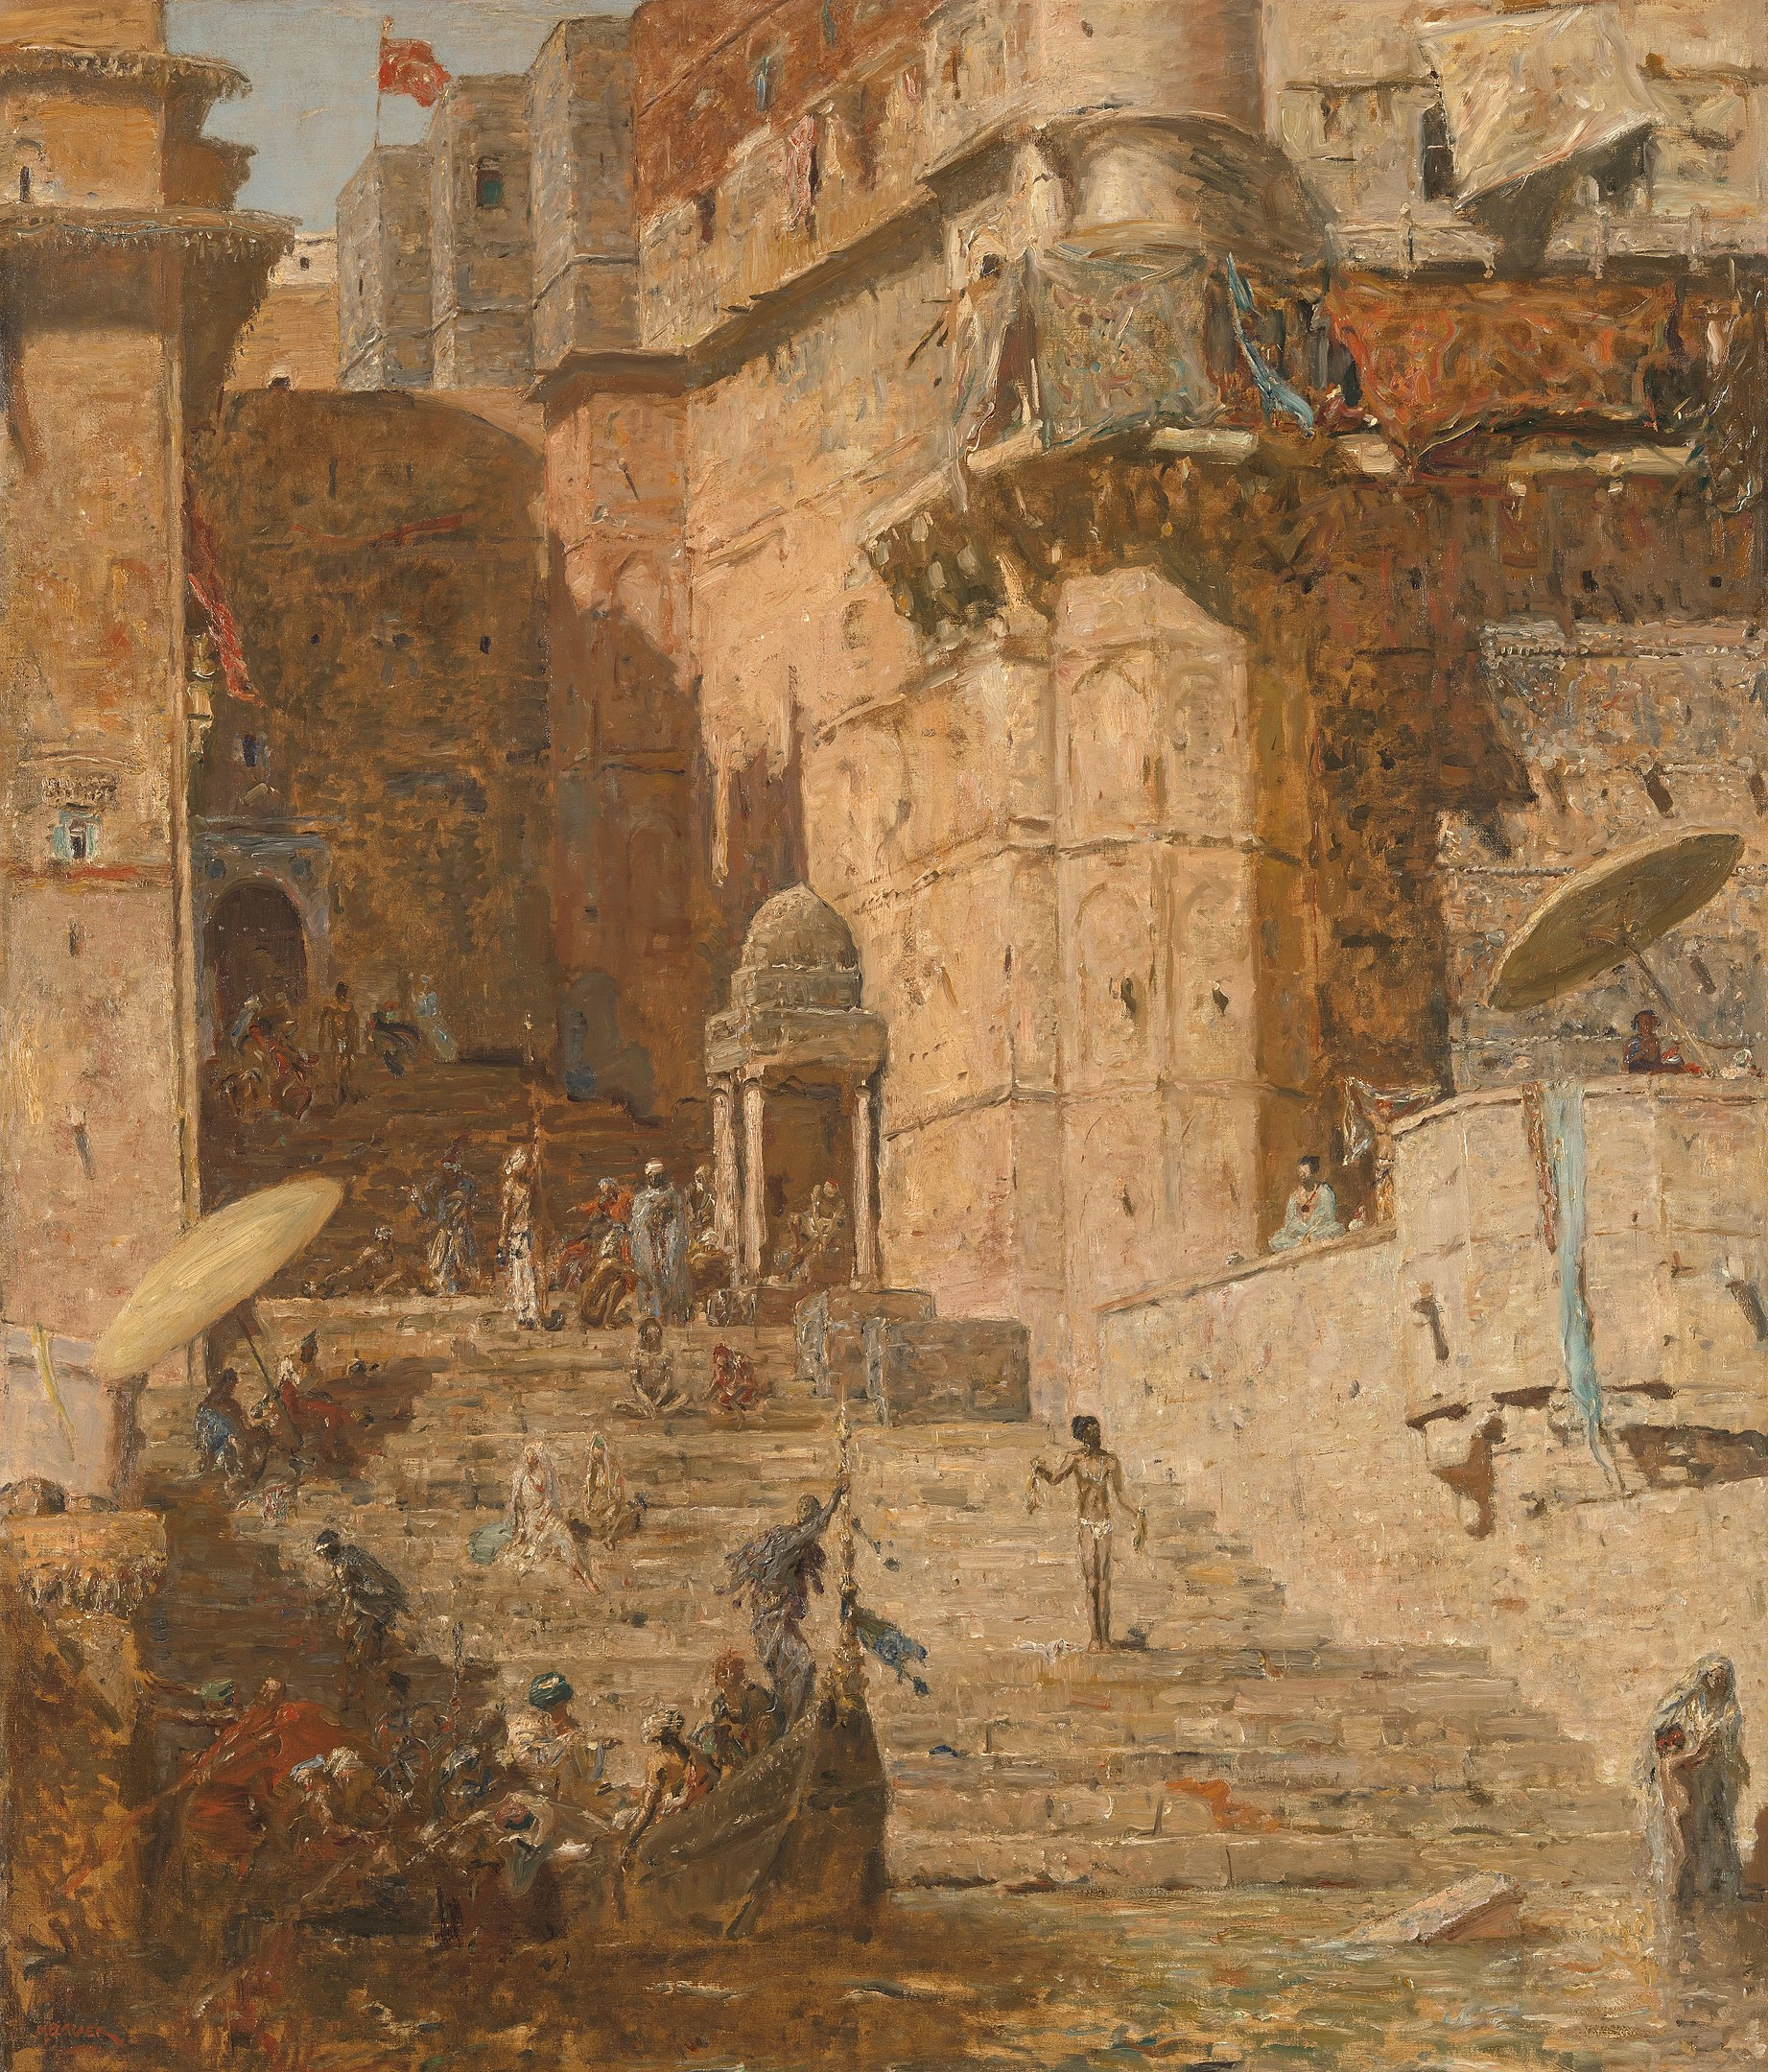 painting marius bauer of varanasi: Cutout of the steps leading into the Ganges River, India. In the middle a large stone staircase, on the left you can still see the Ramawahat Ghat (Ram Ghat) and on the right the Brij Rama Palace. Scattered people on the stairs and in the left foreground a boat in the river.